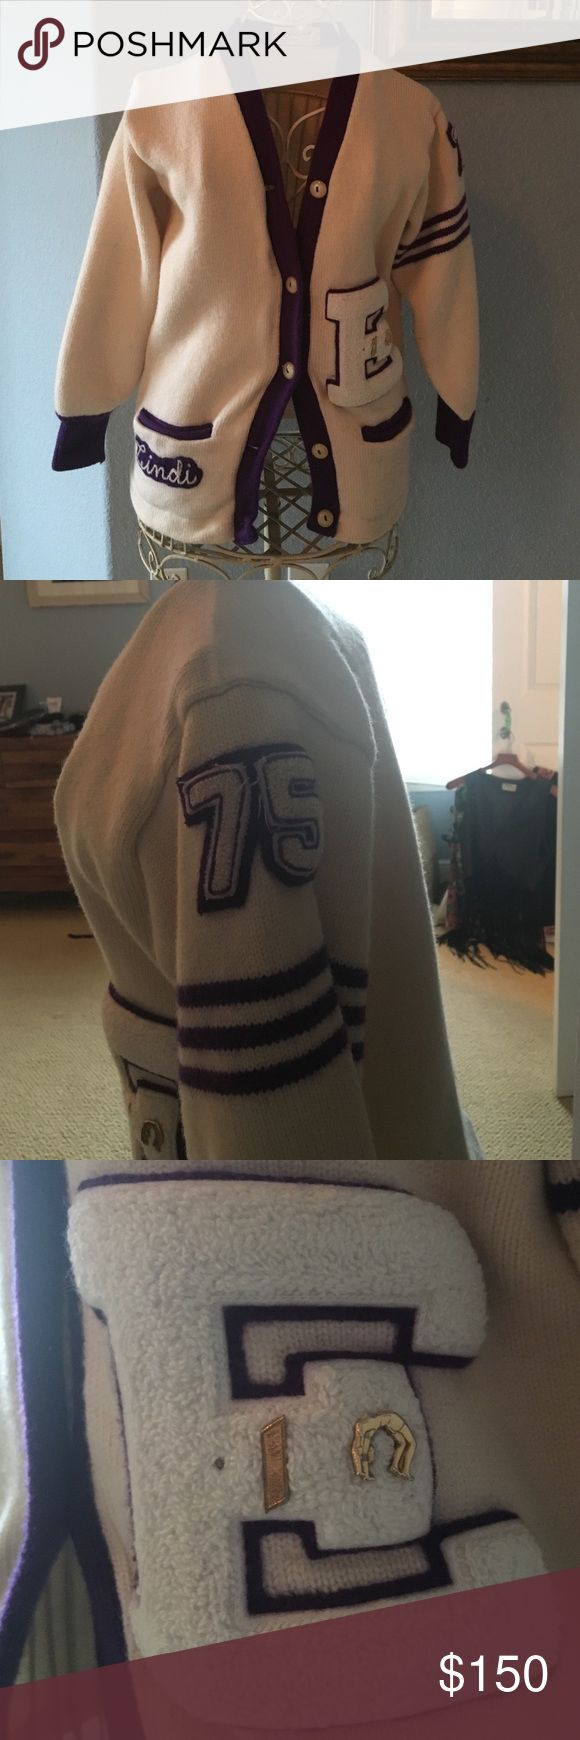 Vintage 1960's Letterman Cheerleading Sweater M/L Amazing vintage 1960's letterman (letterwoman) cheerleading sweater. White with purple striping. In perfect vintage condition  fits medium/large. Vintage Sweaters Cardigans